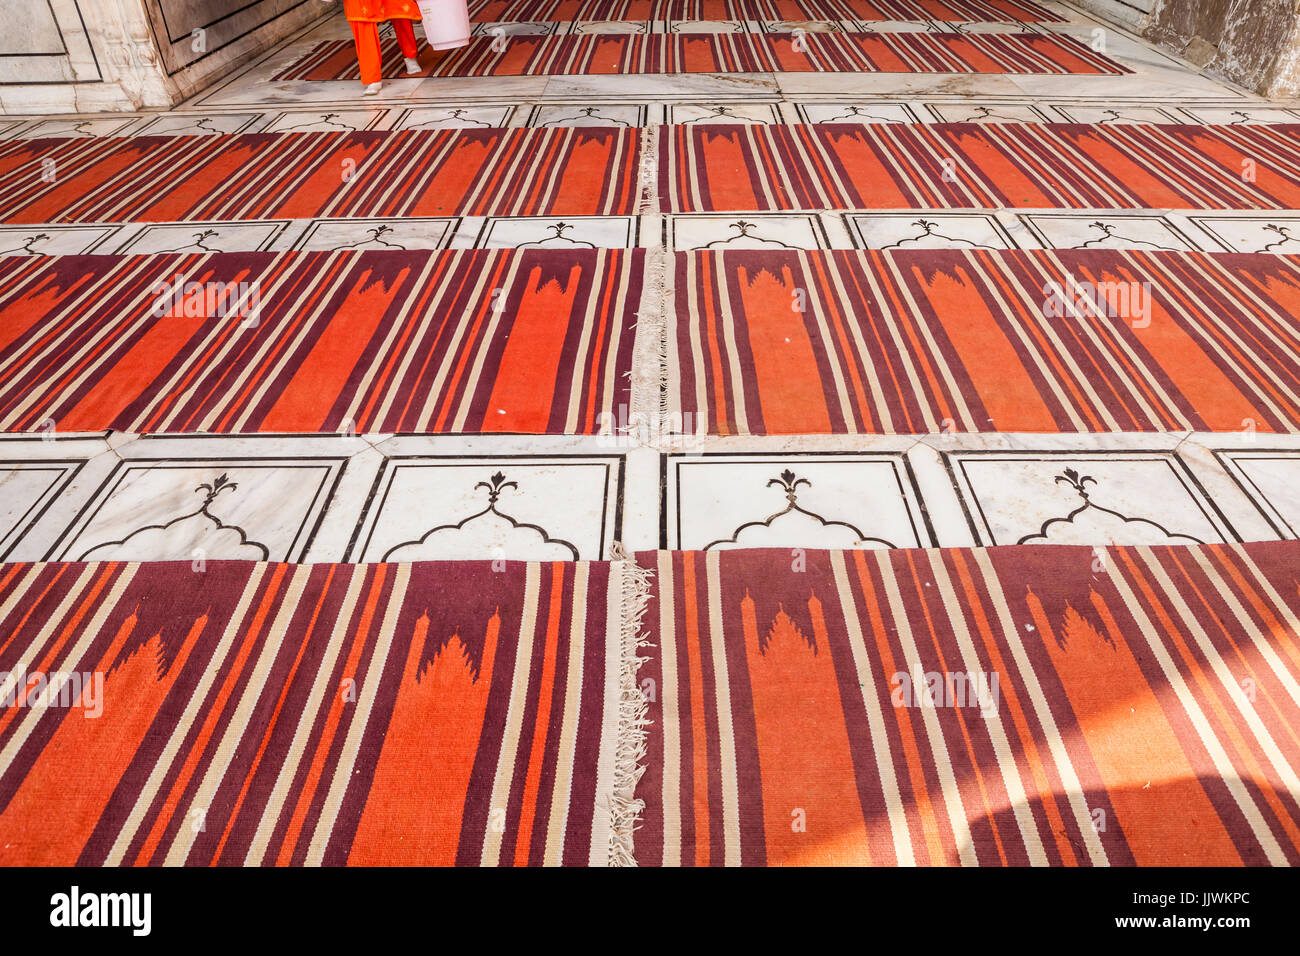 Prayer rugs inside the prayer area of Jama Masjid, one of the largest mosques in Delhi, India. - Stock Image